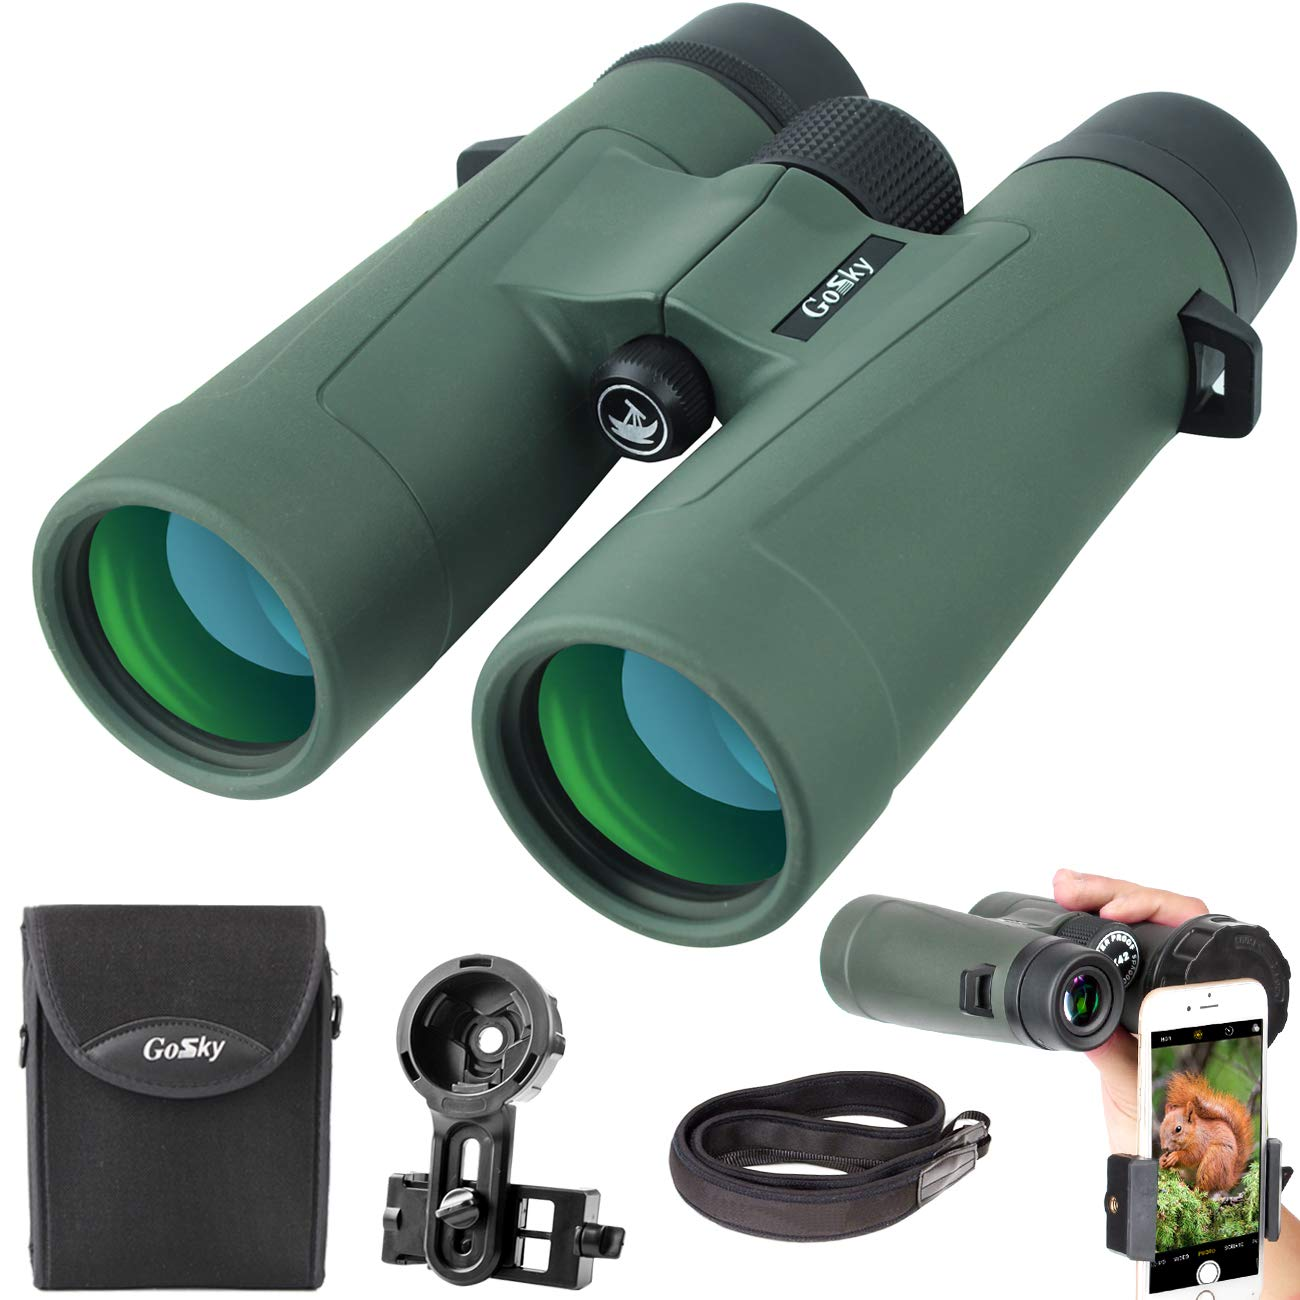 Gosky 8x42 Binoculars for Adults, Ultra HD Professional Binoculars for Bird Watching Travel Stargazing Hunting Concerts Sports-BAK4 Prism FMC Lens-with Phone Mount Strap Carrying Bag by Gosky